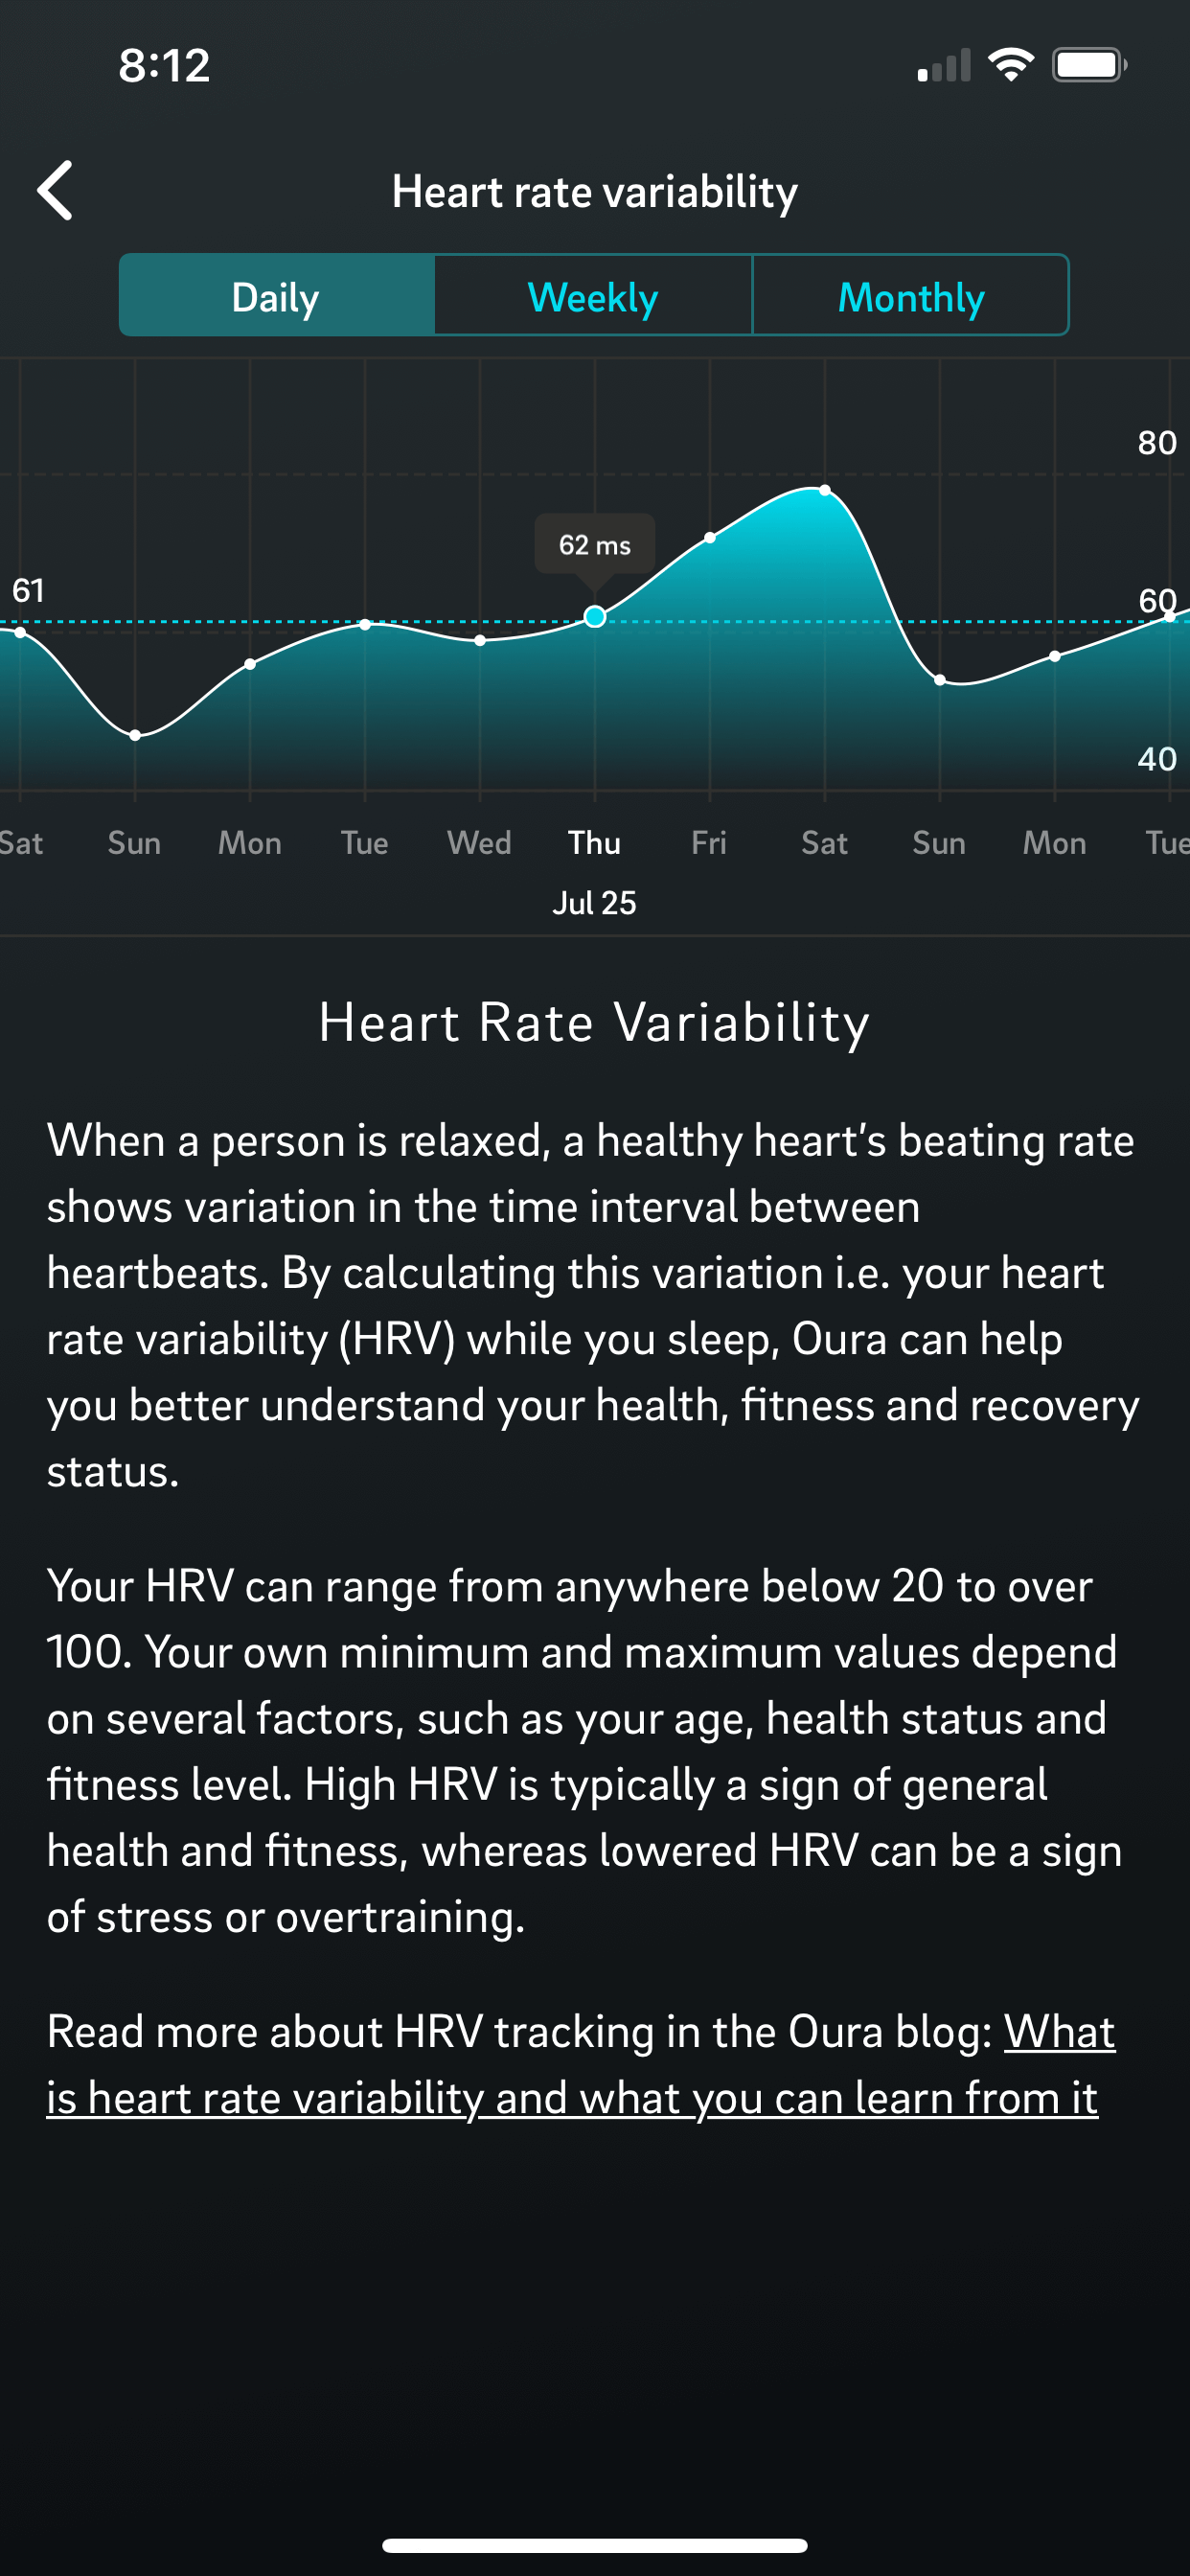 Oura ring heart rate variability